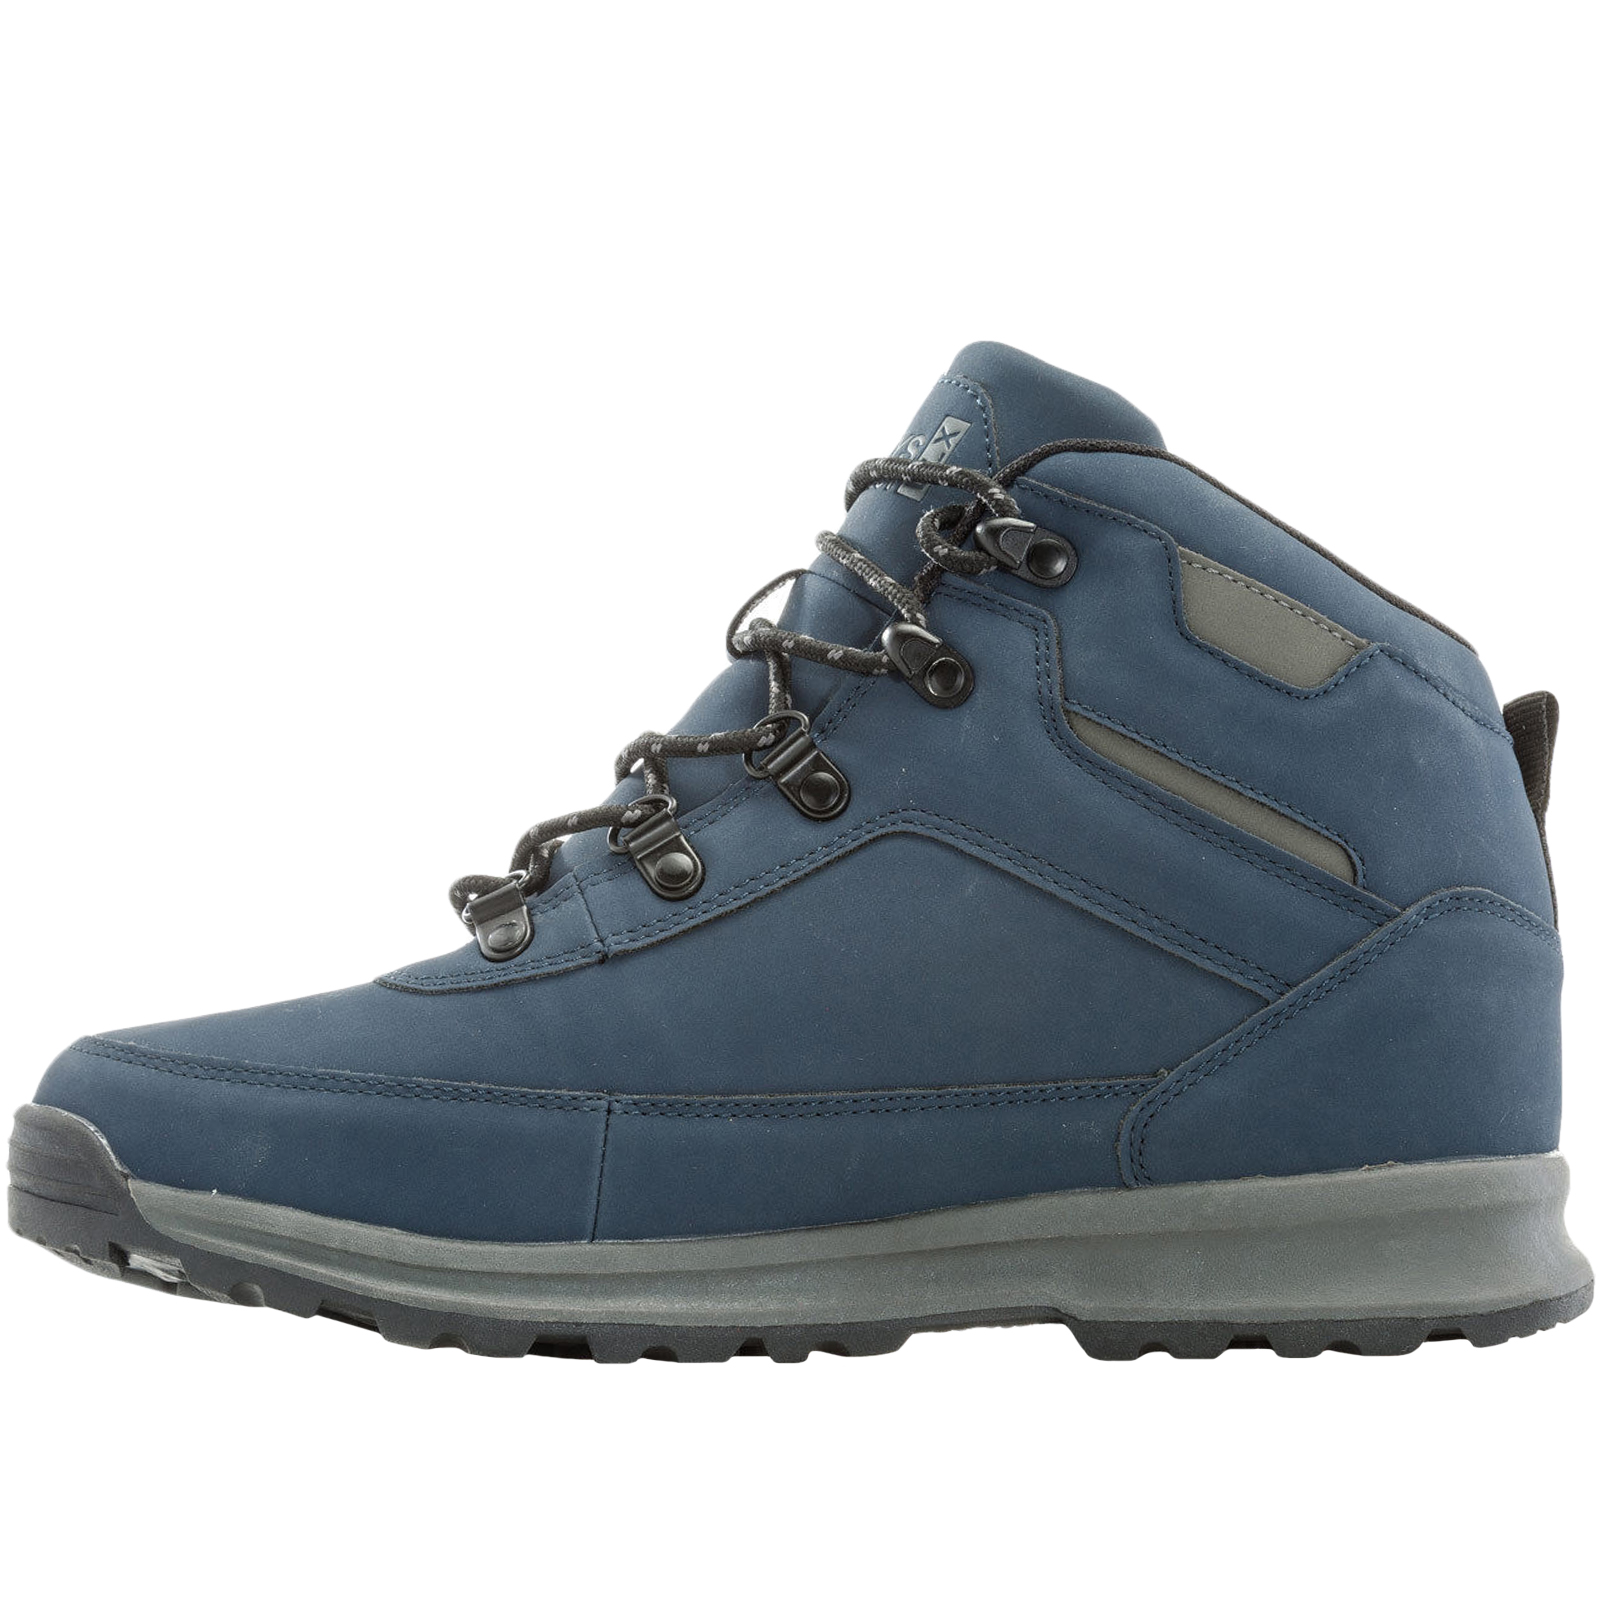 Henleys-Mens-Travis-Lace-Up-Casual-High-Top-Outdoor-Hiking-Walking-Boots-Shoes thumbnail 19